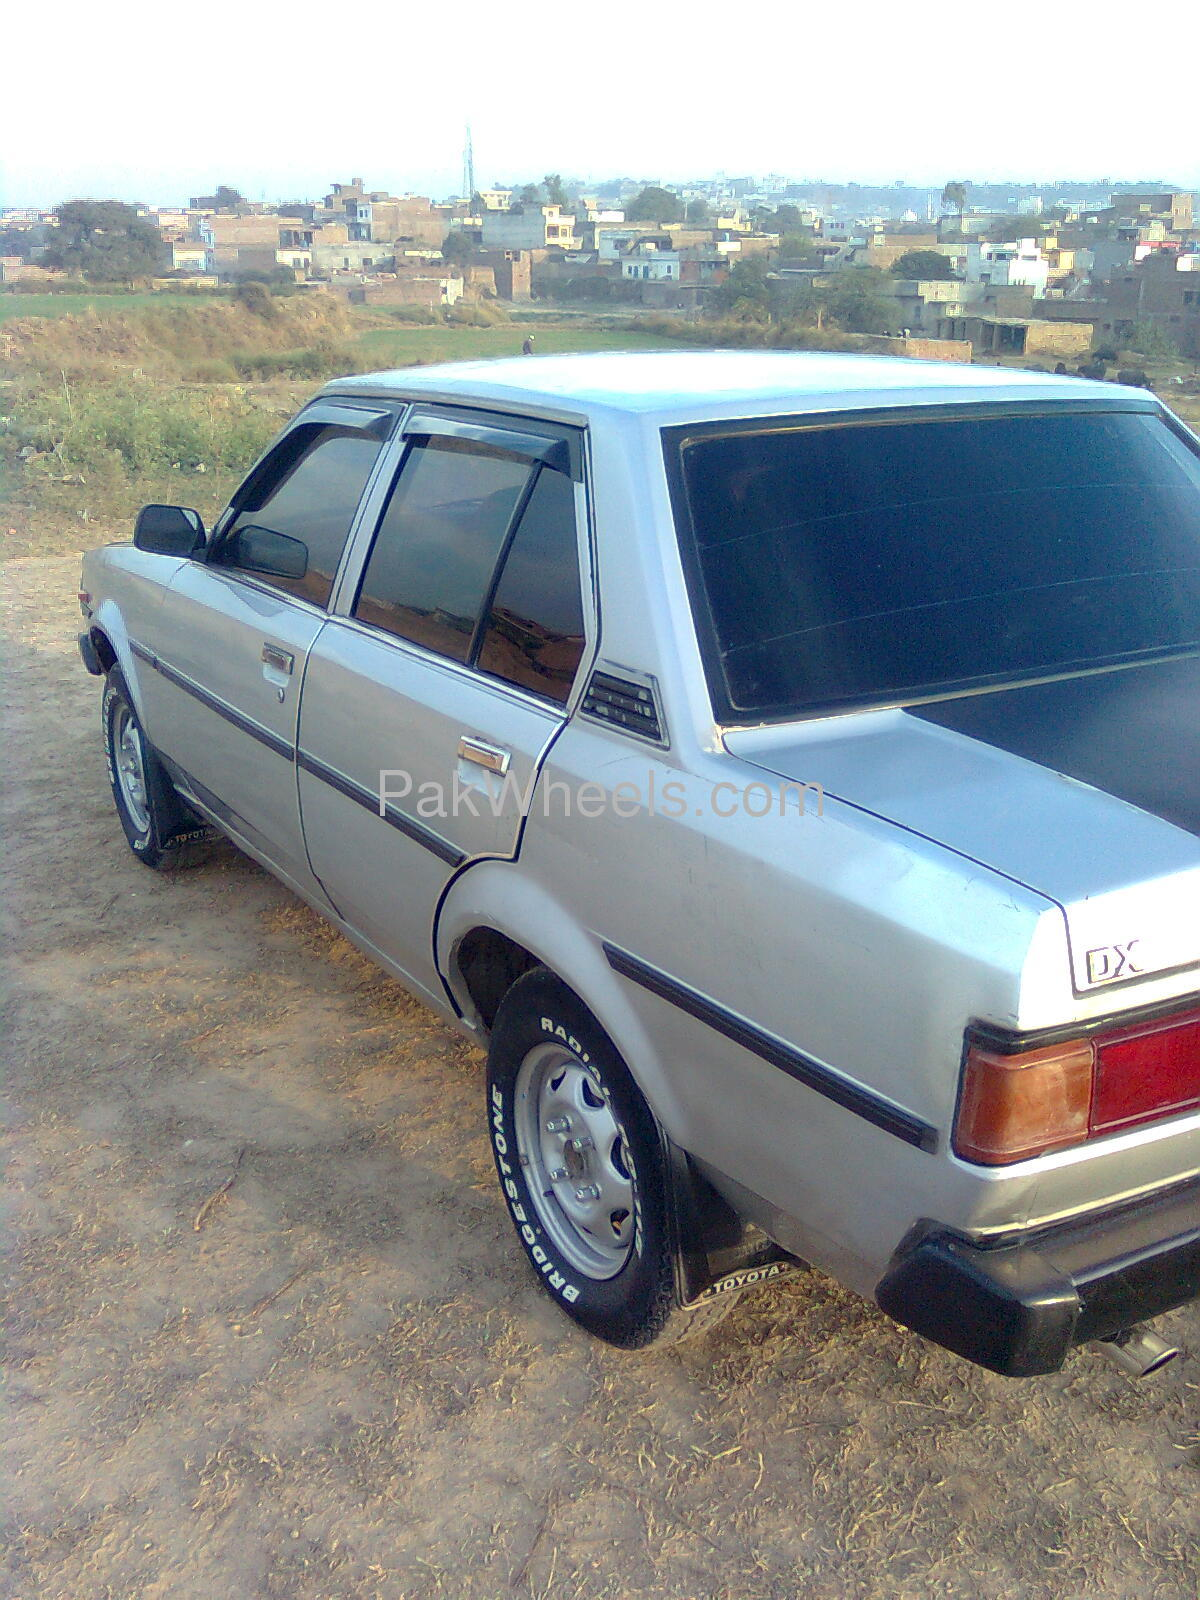 used toyota corolla dx 1980 car for sale in rawalpindi 335345 pakwheels. Black Bedroom Furniture Sets. Home Design Ideas